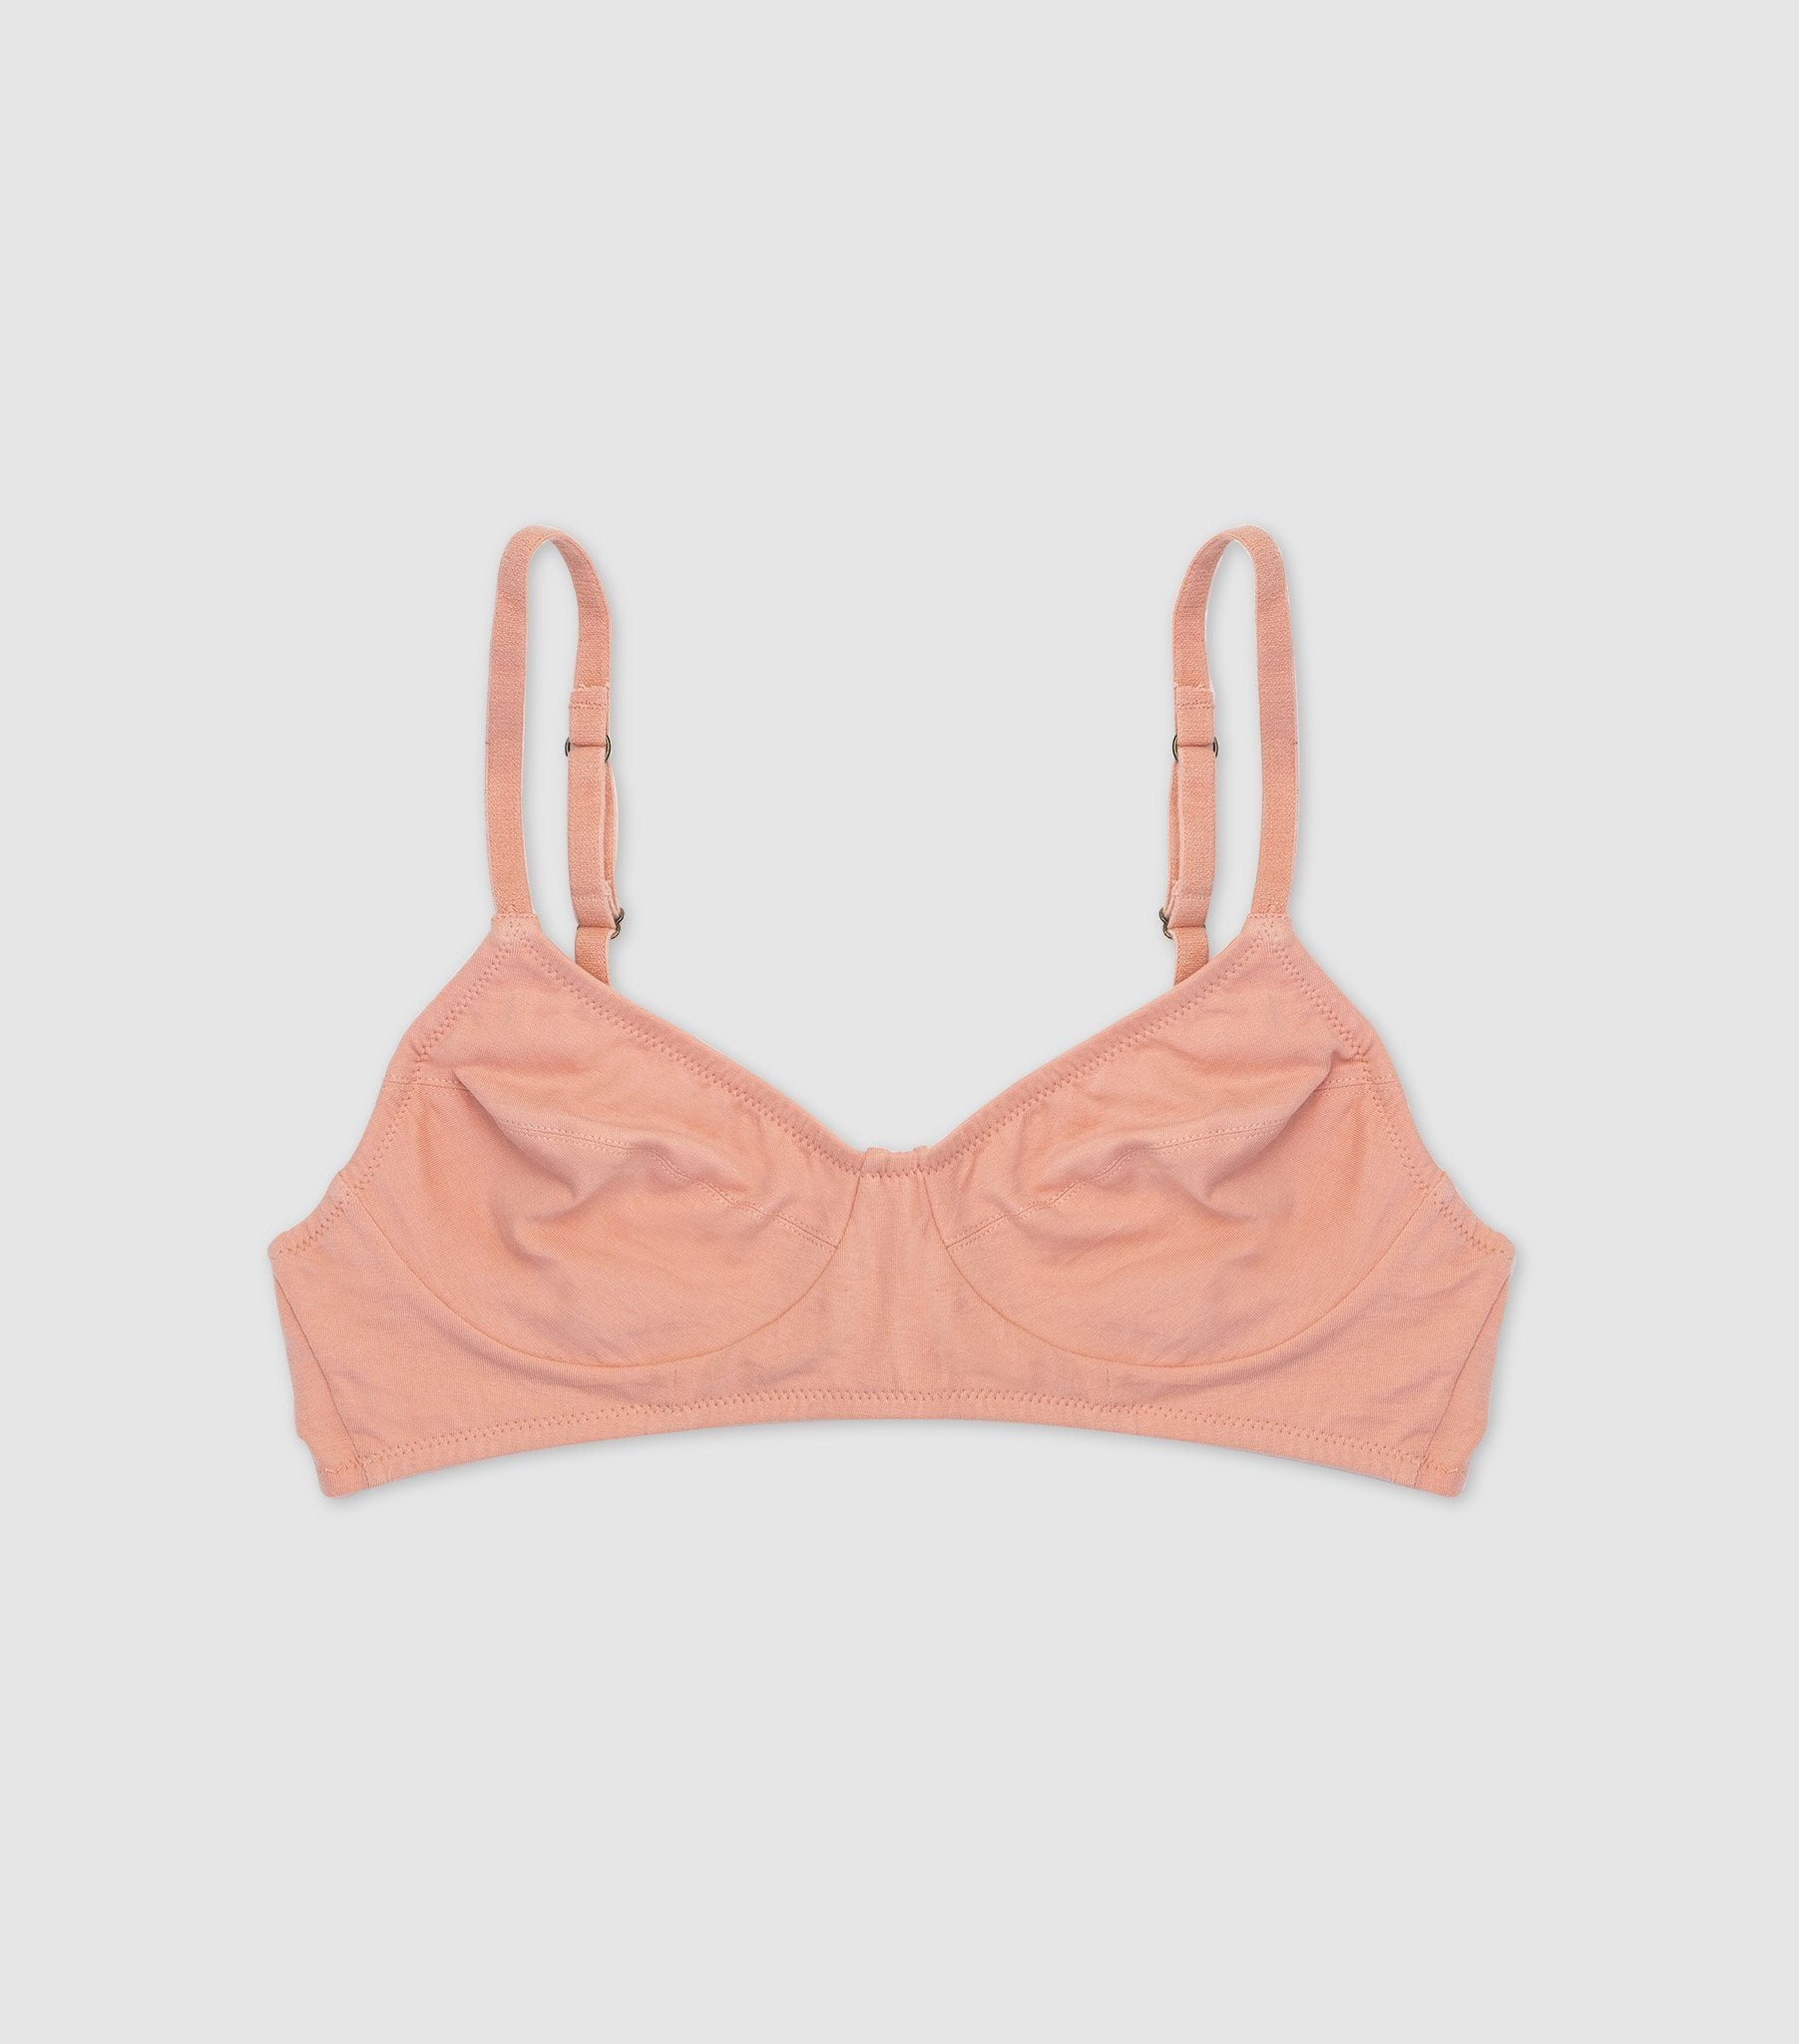 Full Cup Wirefree Bralette Rose